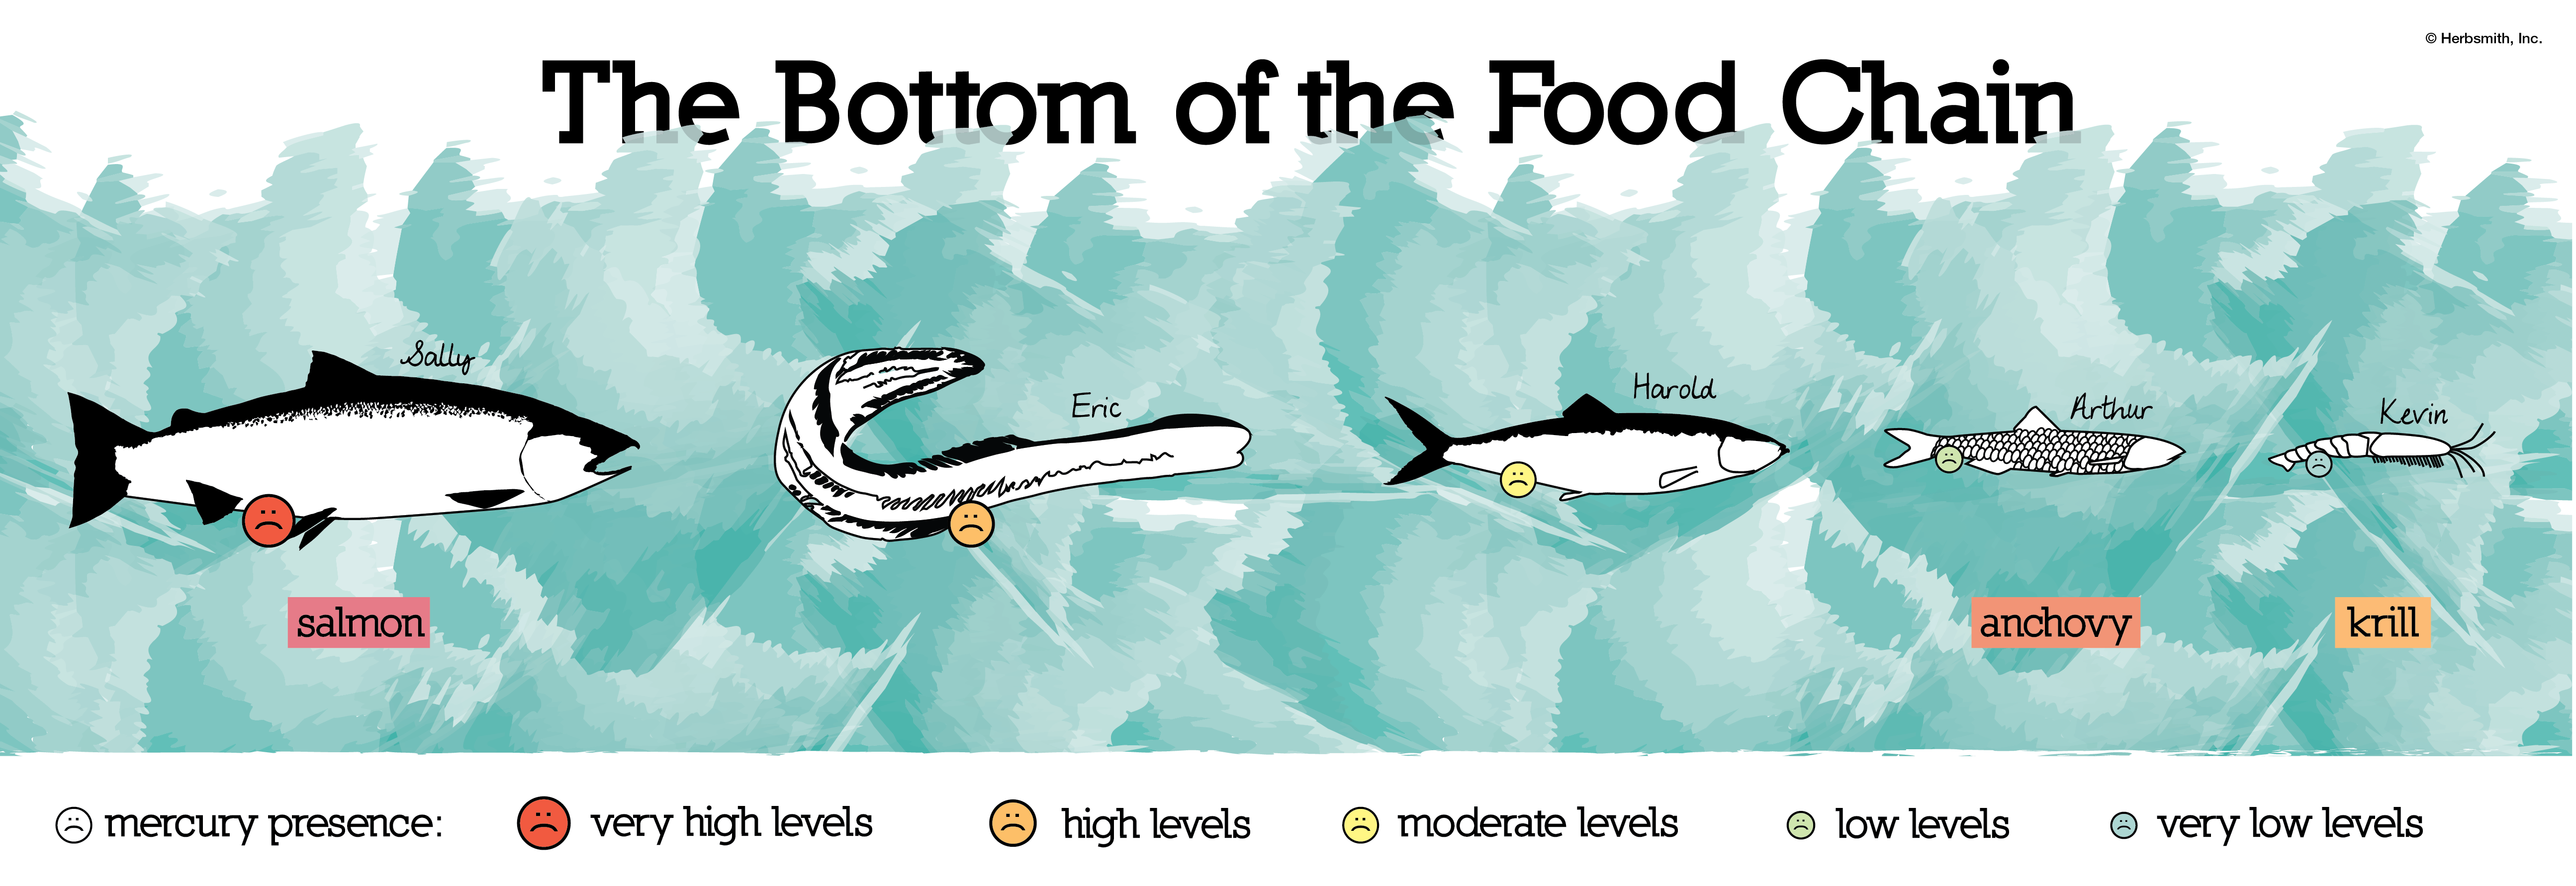 The Bottom of the Food Chain | Herbsmith